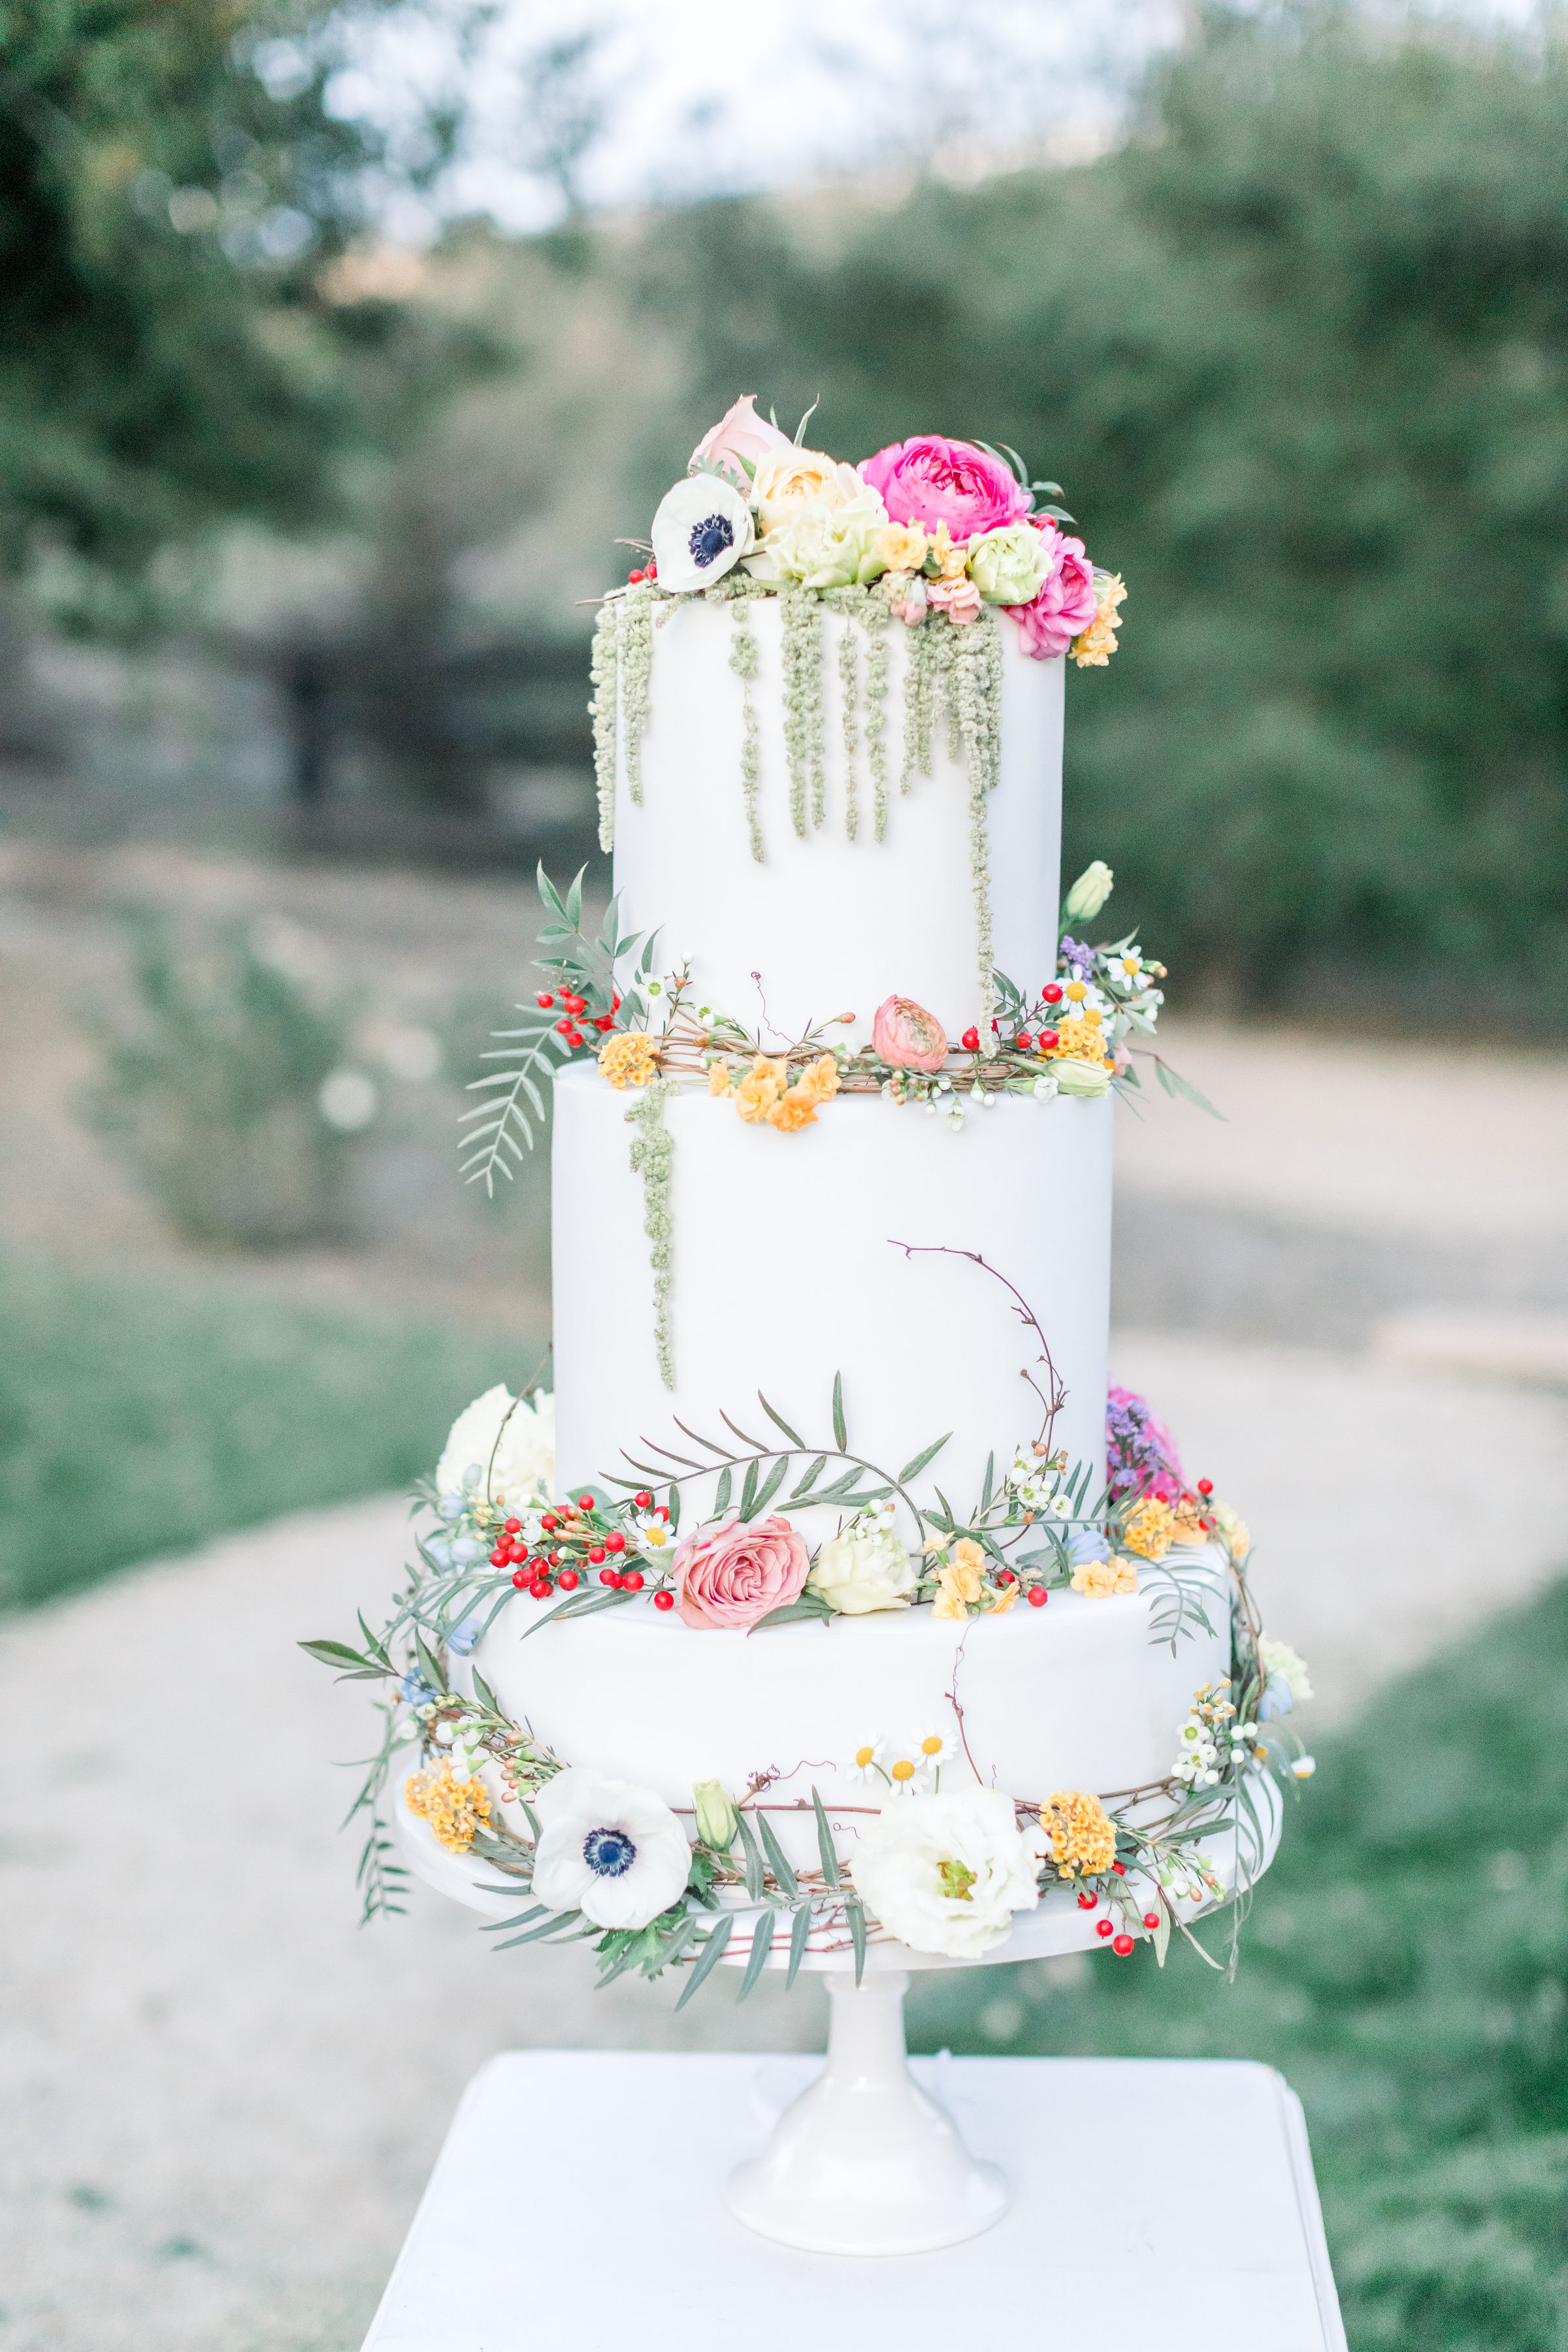 Wedding cake decorated with fresh flowers used at the Alice in Wonderland styled shoot in Murrieta.